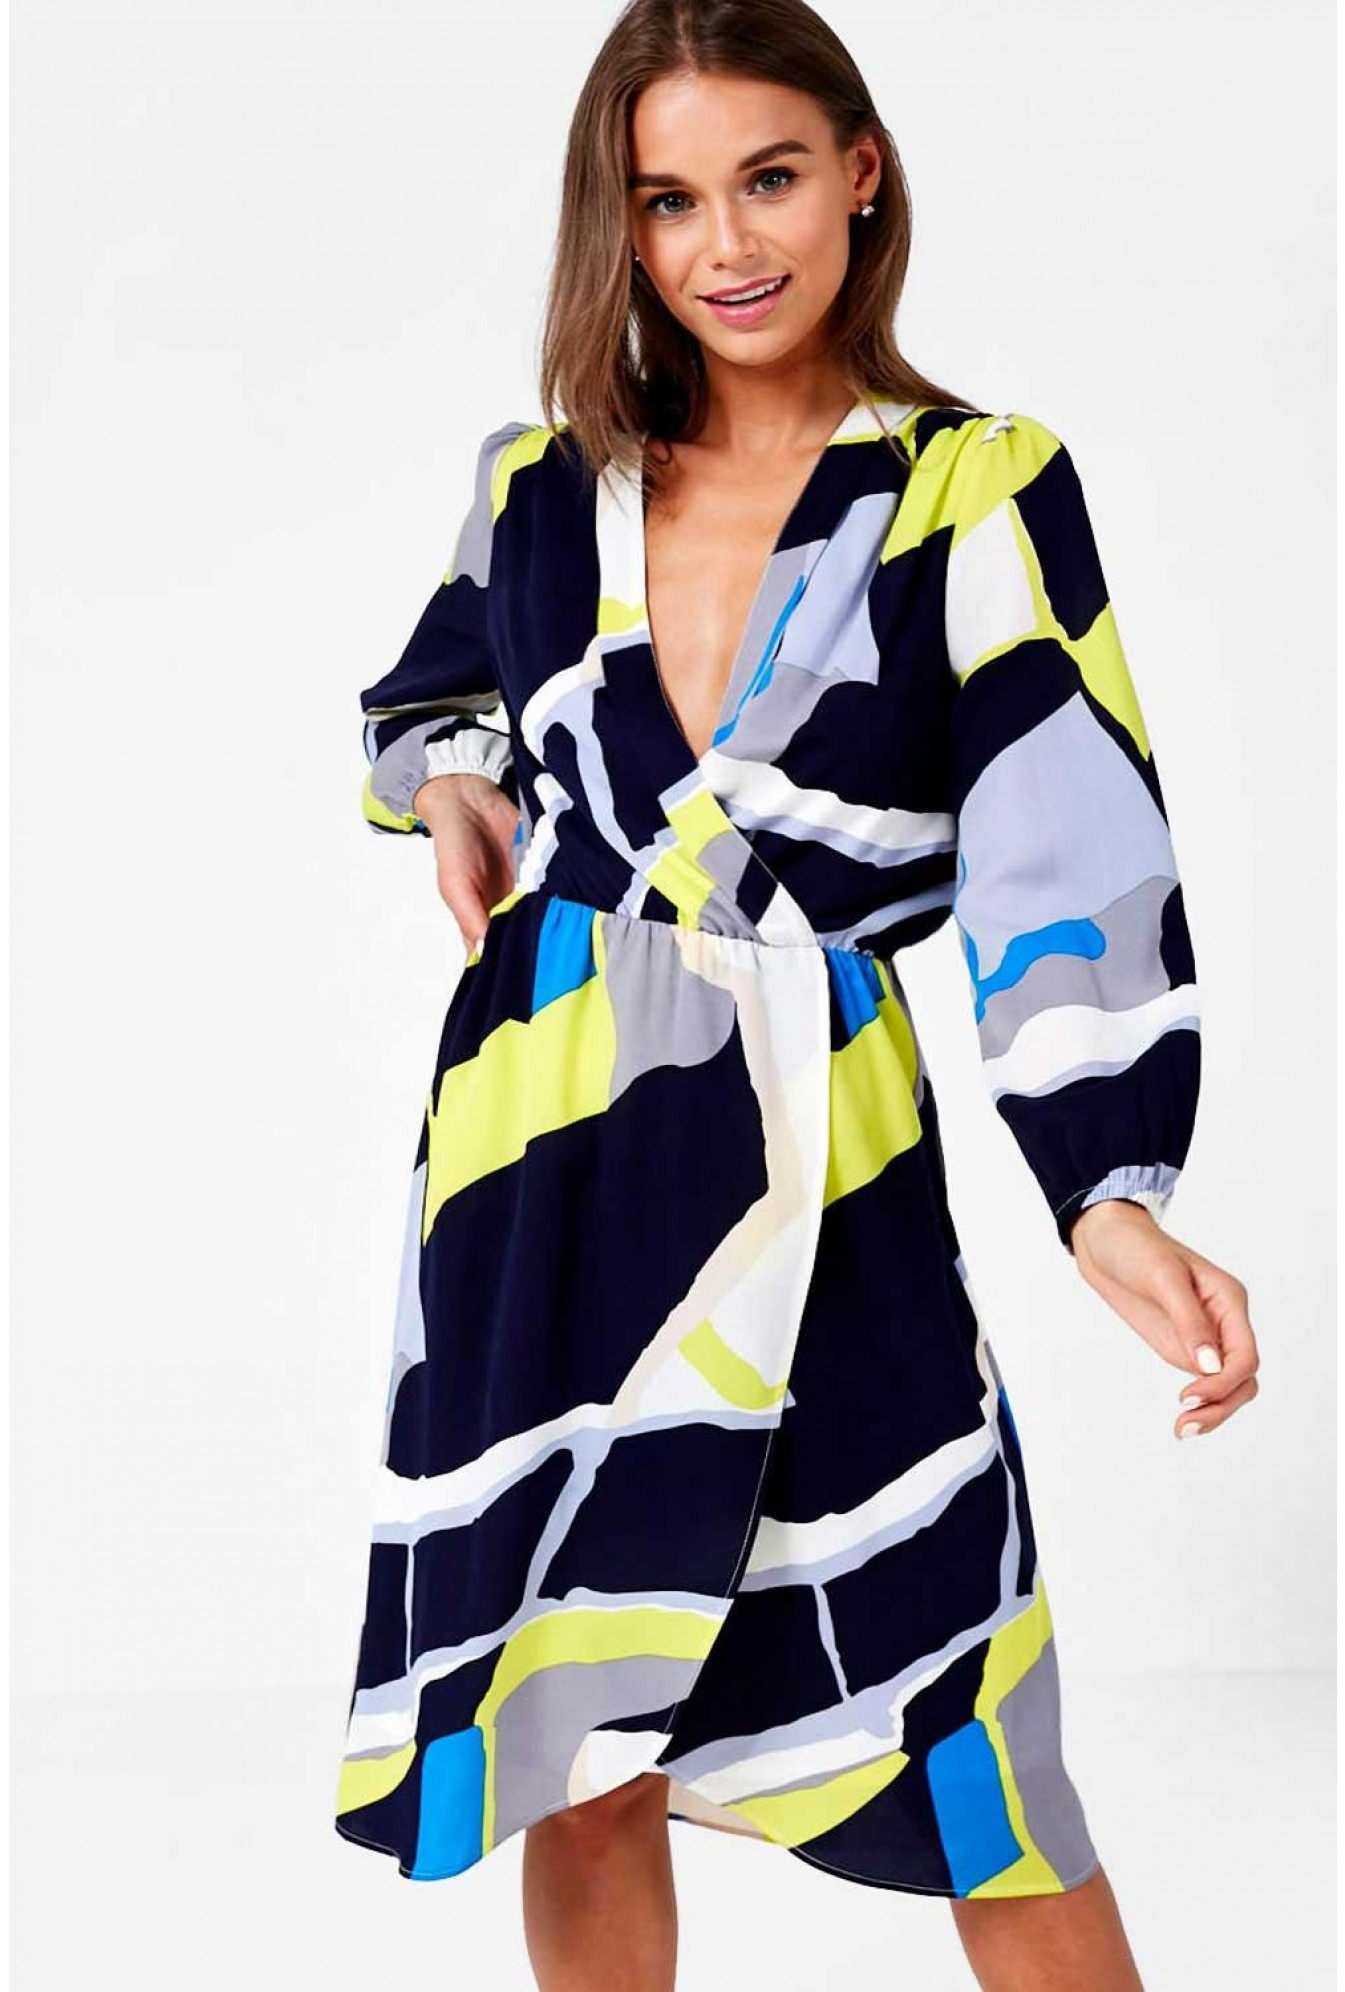 368c02b72d Marc Angelo Selena Occasion Dress in Abstract Print | iCLOTHING